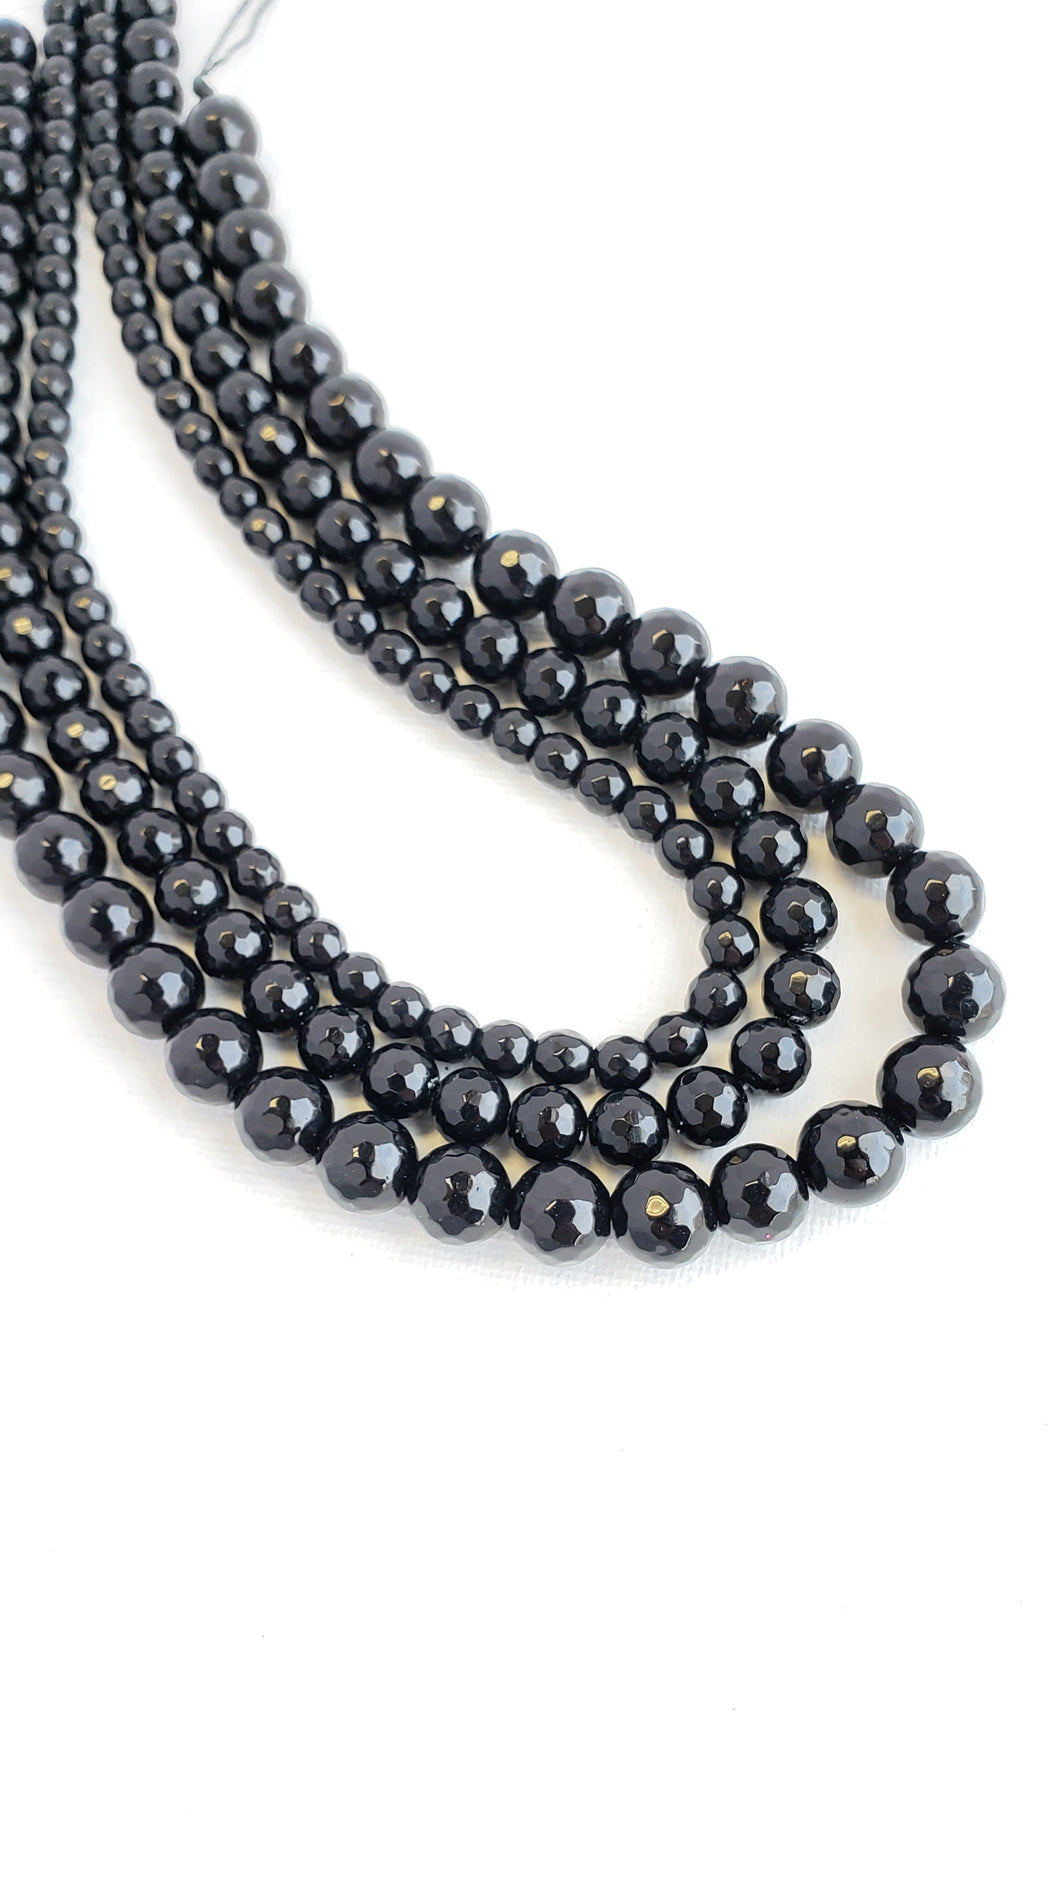 8MM BLACK ONYX FACETED 16